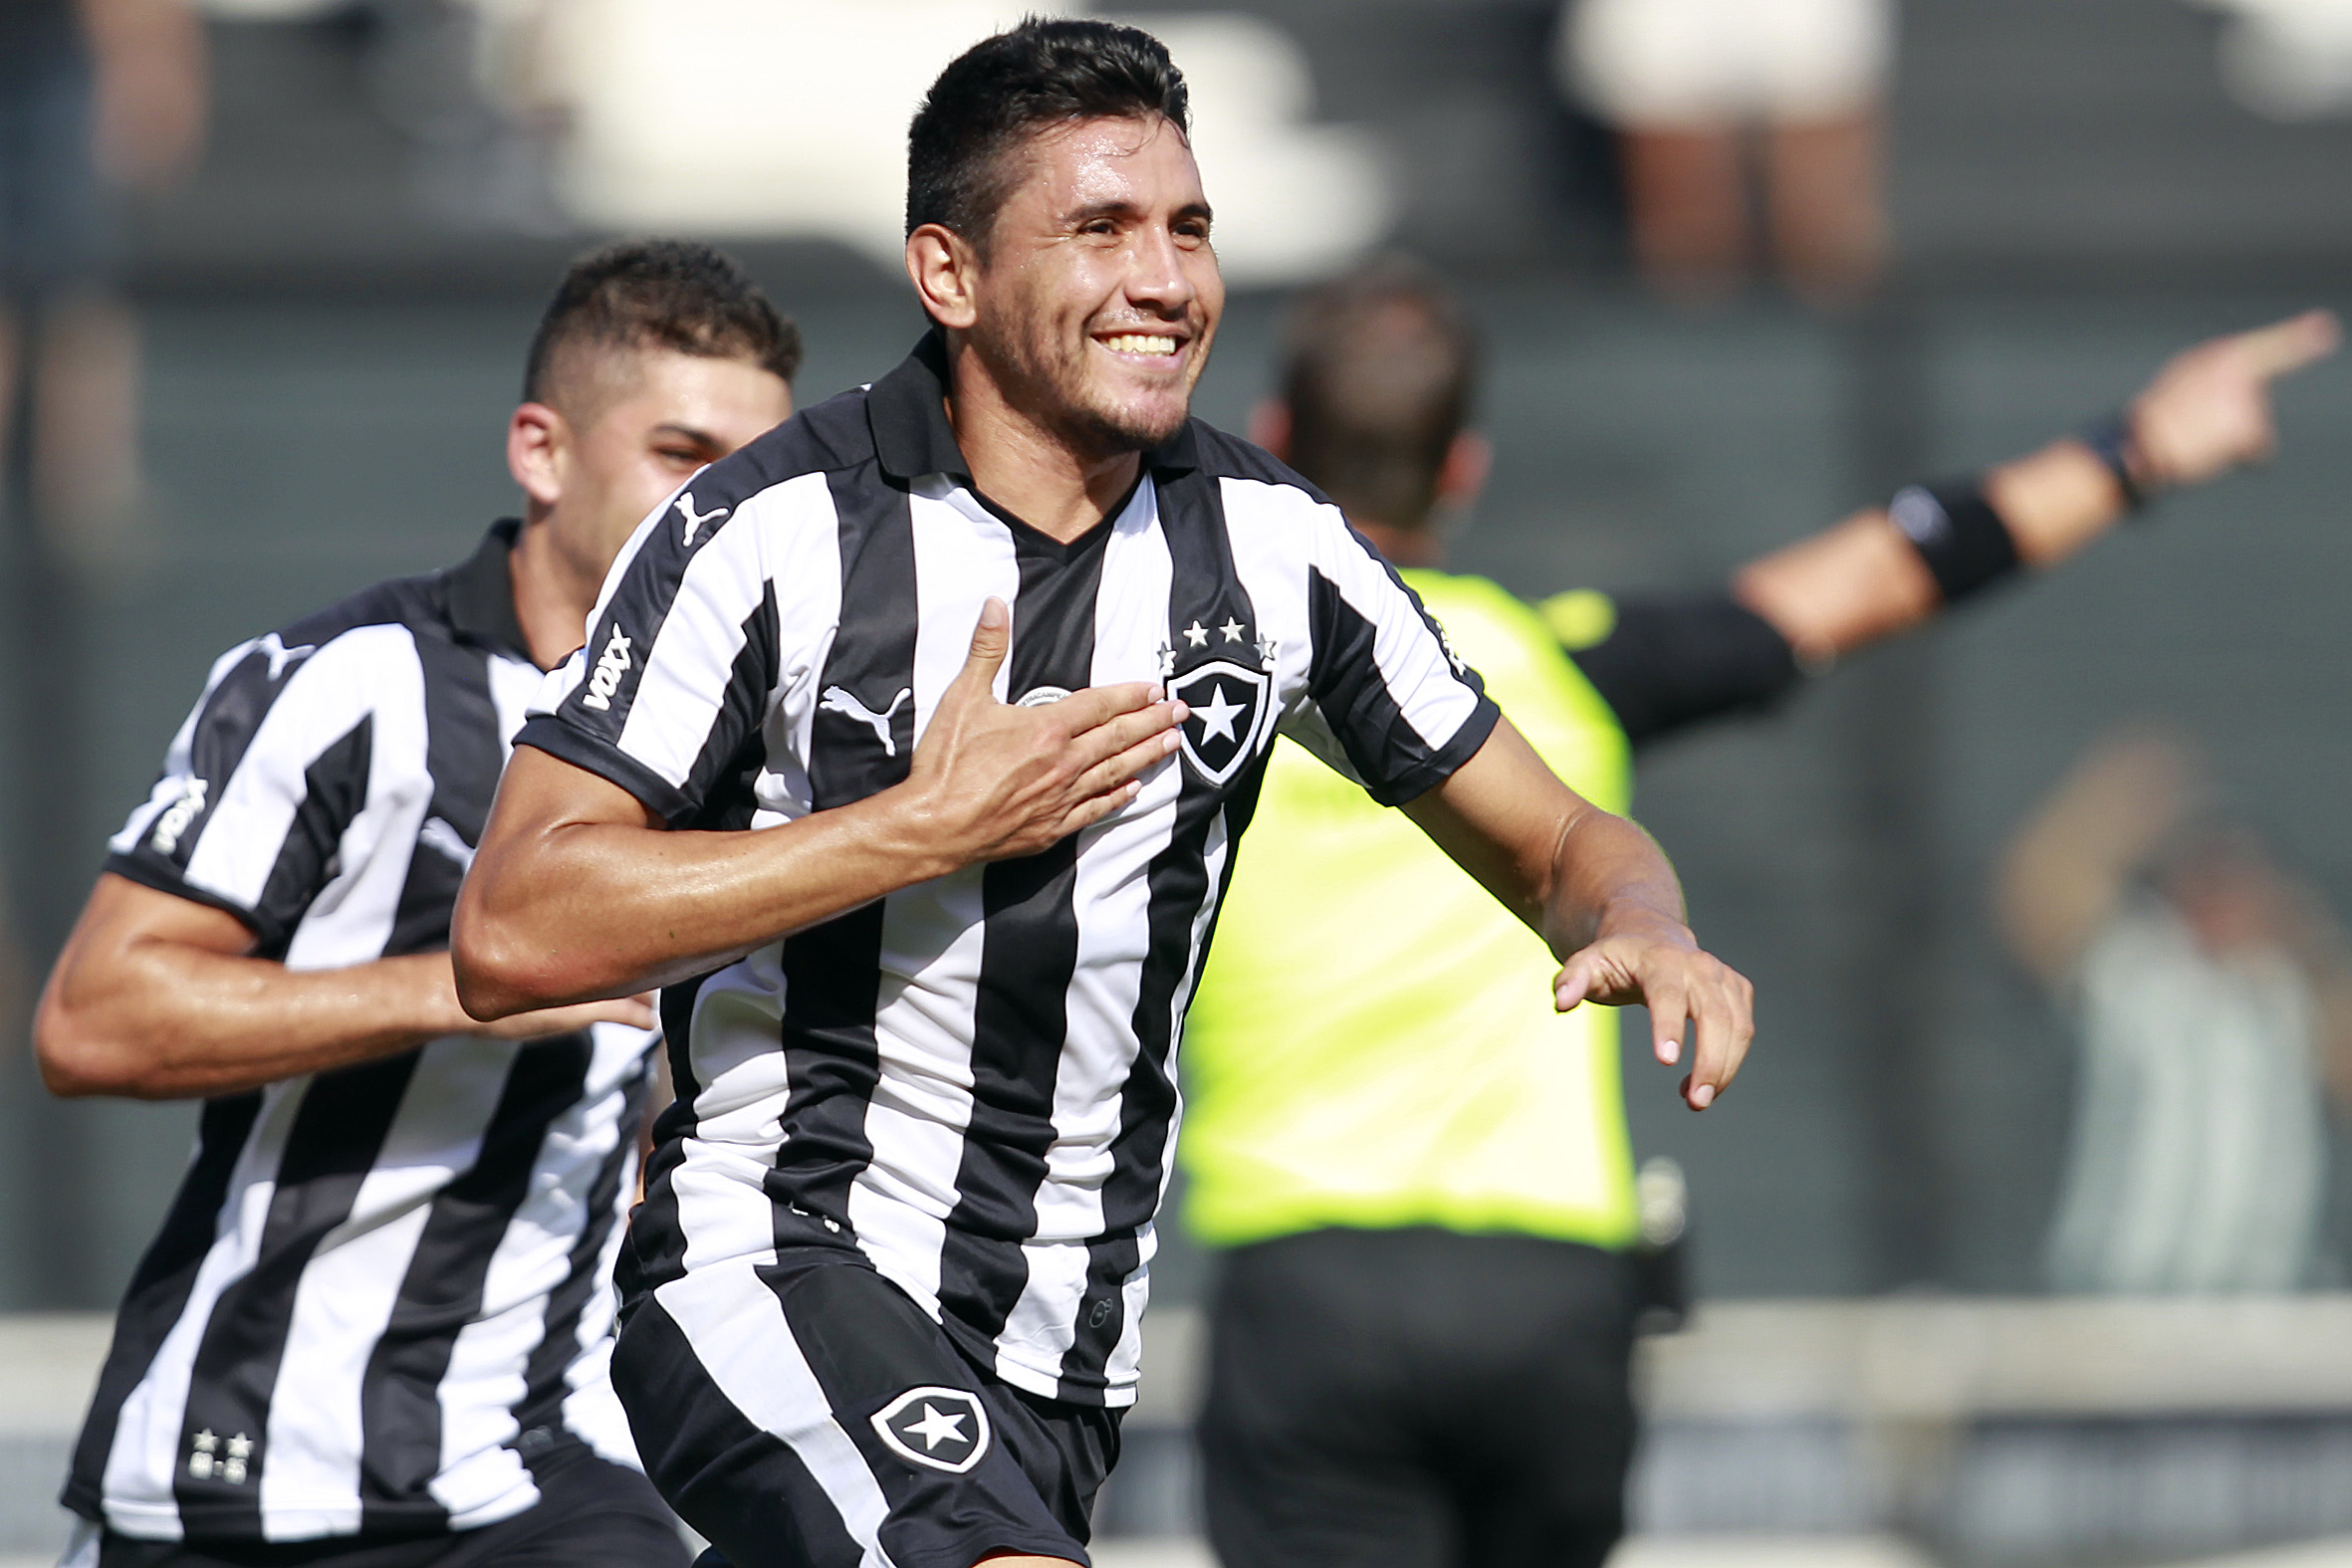 Botafogo RJ VS Atletico GO ( BETTING TIPS, Match Preview & Expert Analysis )